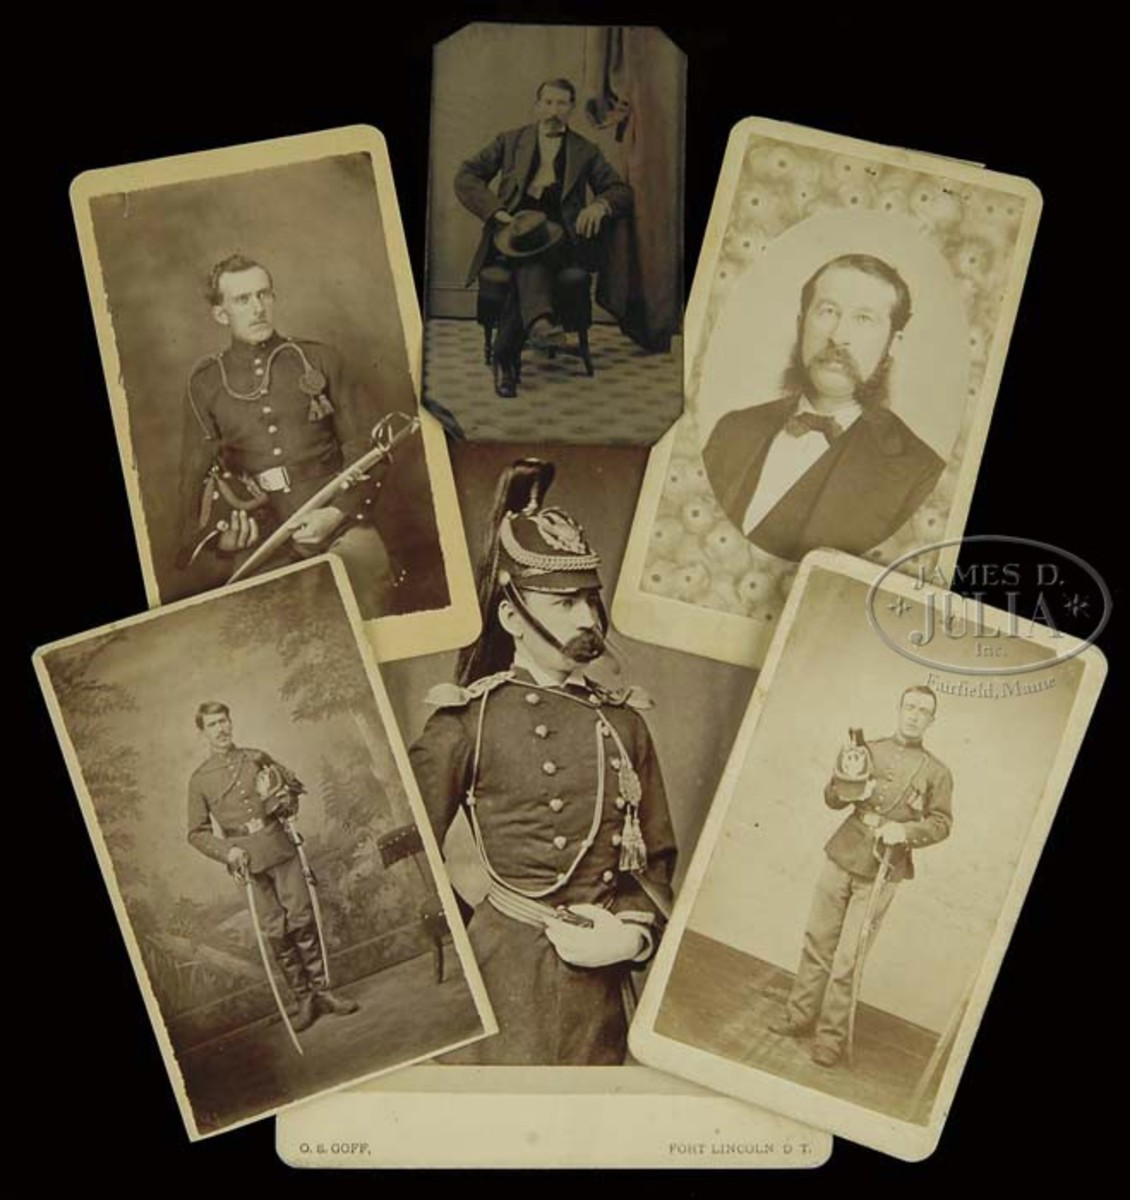 A single owner collection of images and objects relating to General Custer and his 7th Cavalry and the infamous Battle of Little Big Horn. Approximately 80 items including Captain George Yates (KIA) carved Meerschaum pipe and image and also carved Meerschaum pipe and image of Captain Thomas Benteen Weir. Entire collection estimated at $300,000-$400,000.